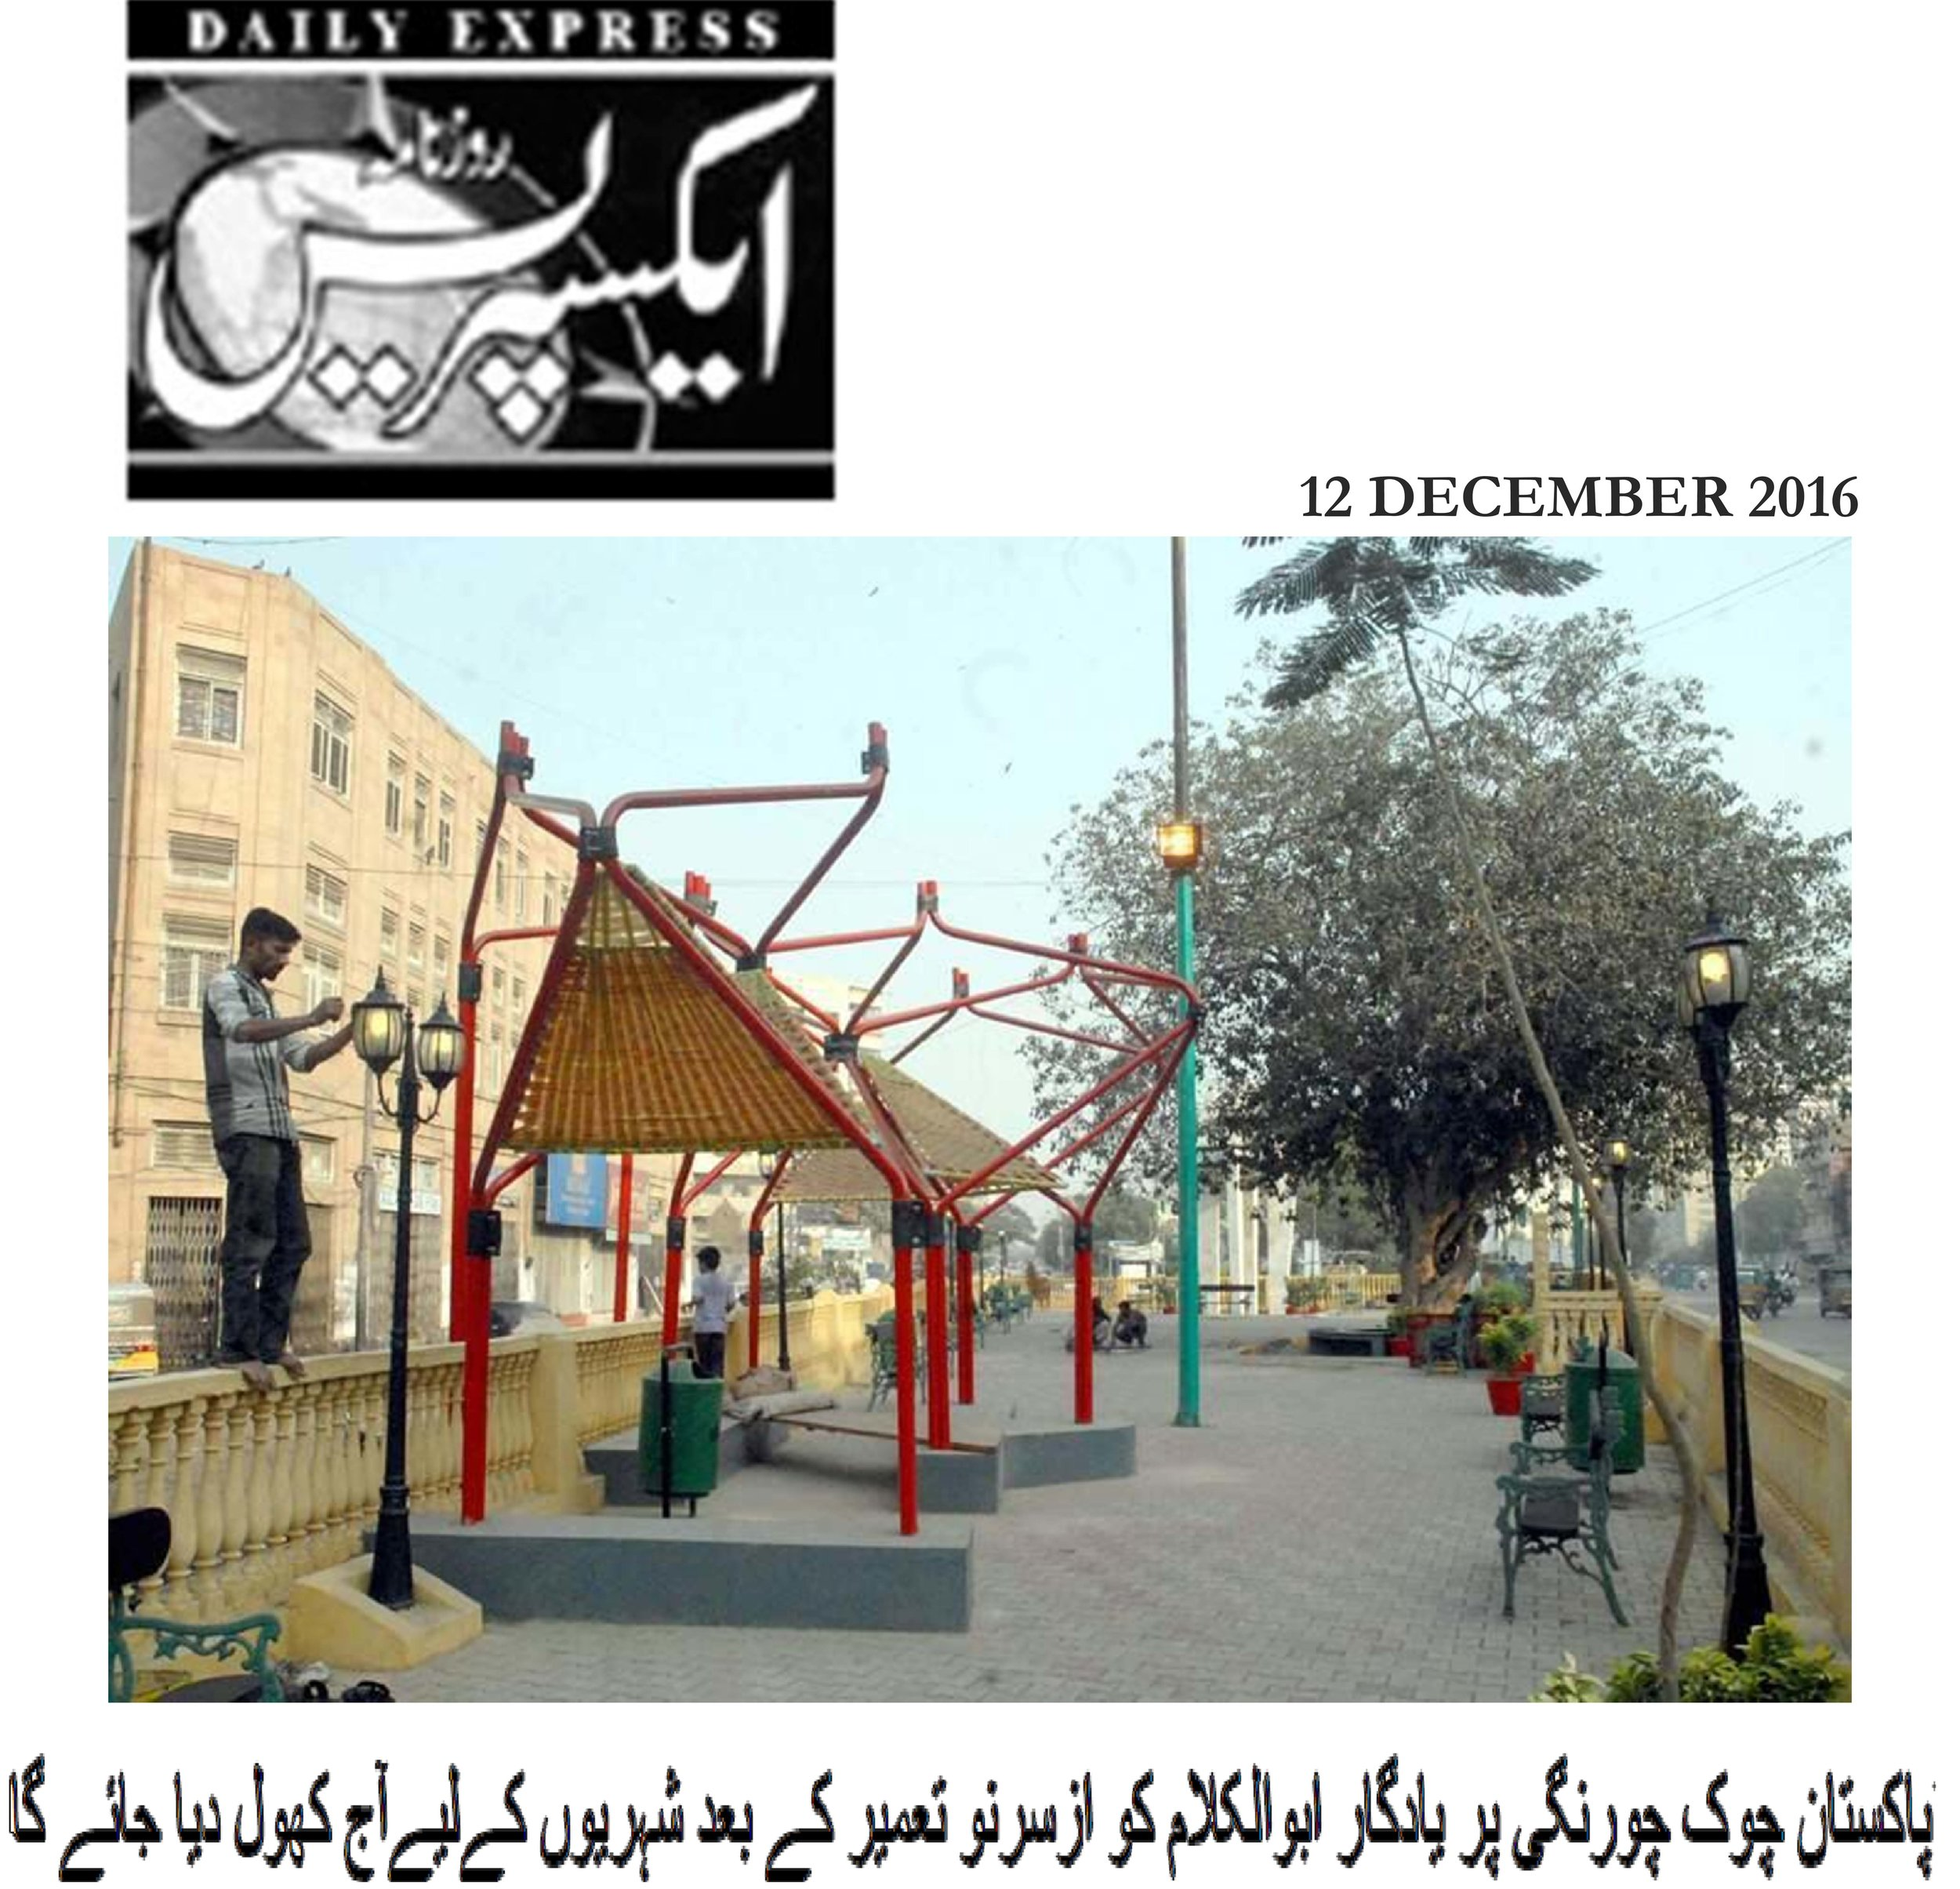 Published in local Urdu Newspaper, Roznama Daily Express on 12th Decmeber, 2016.